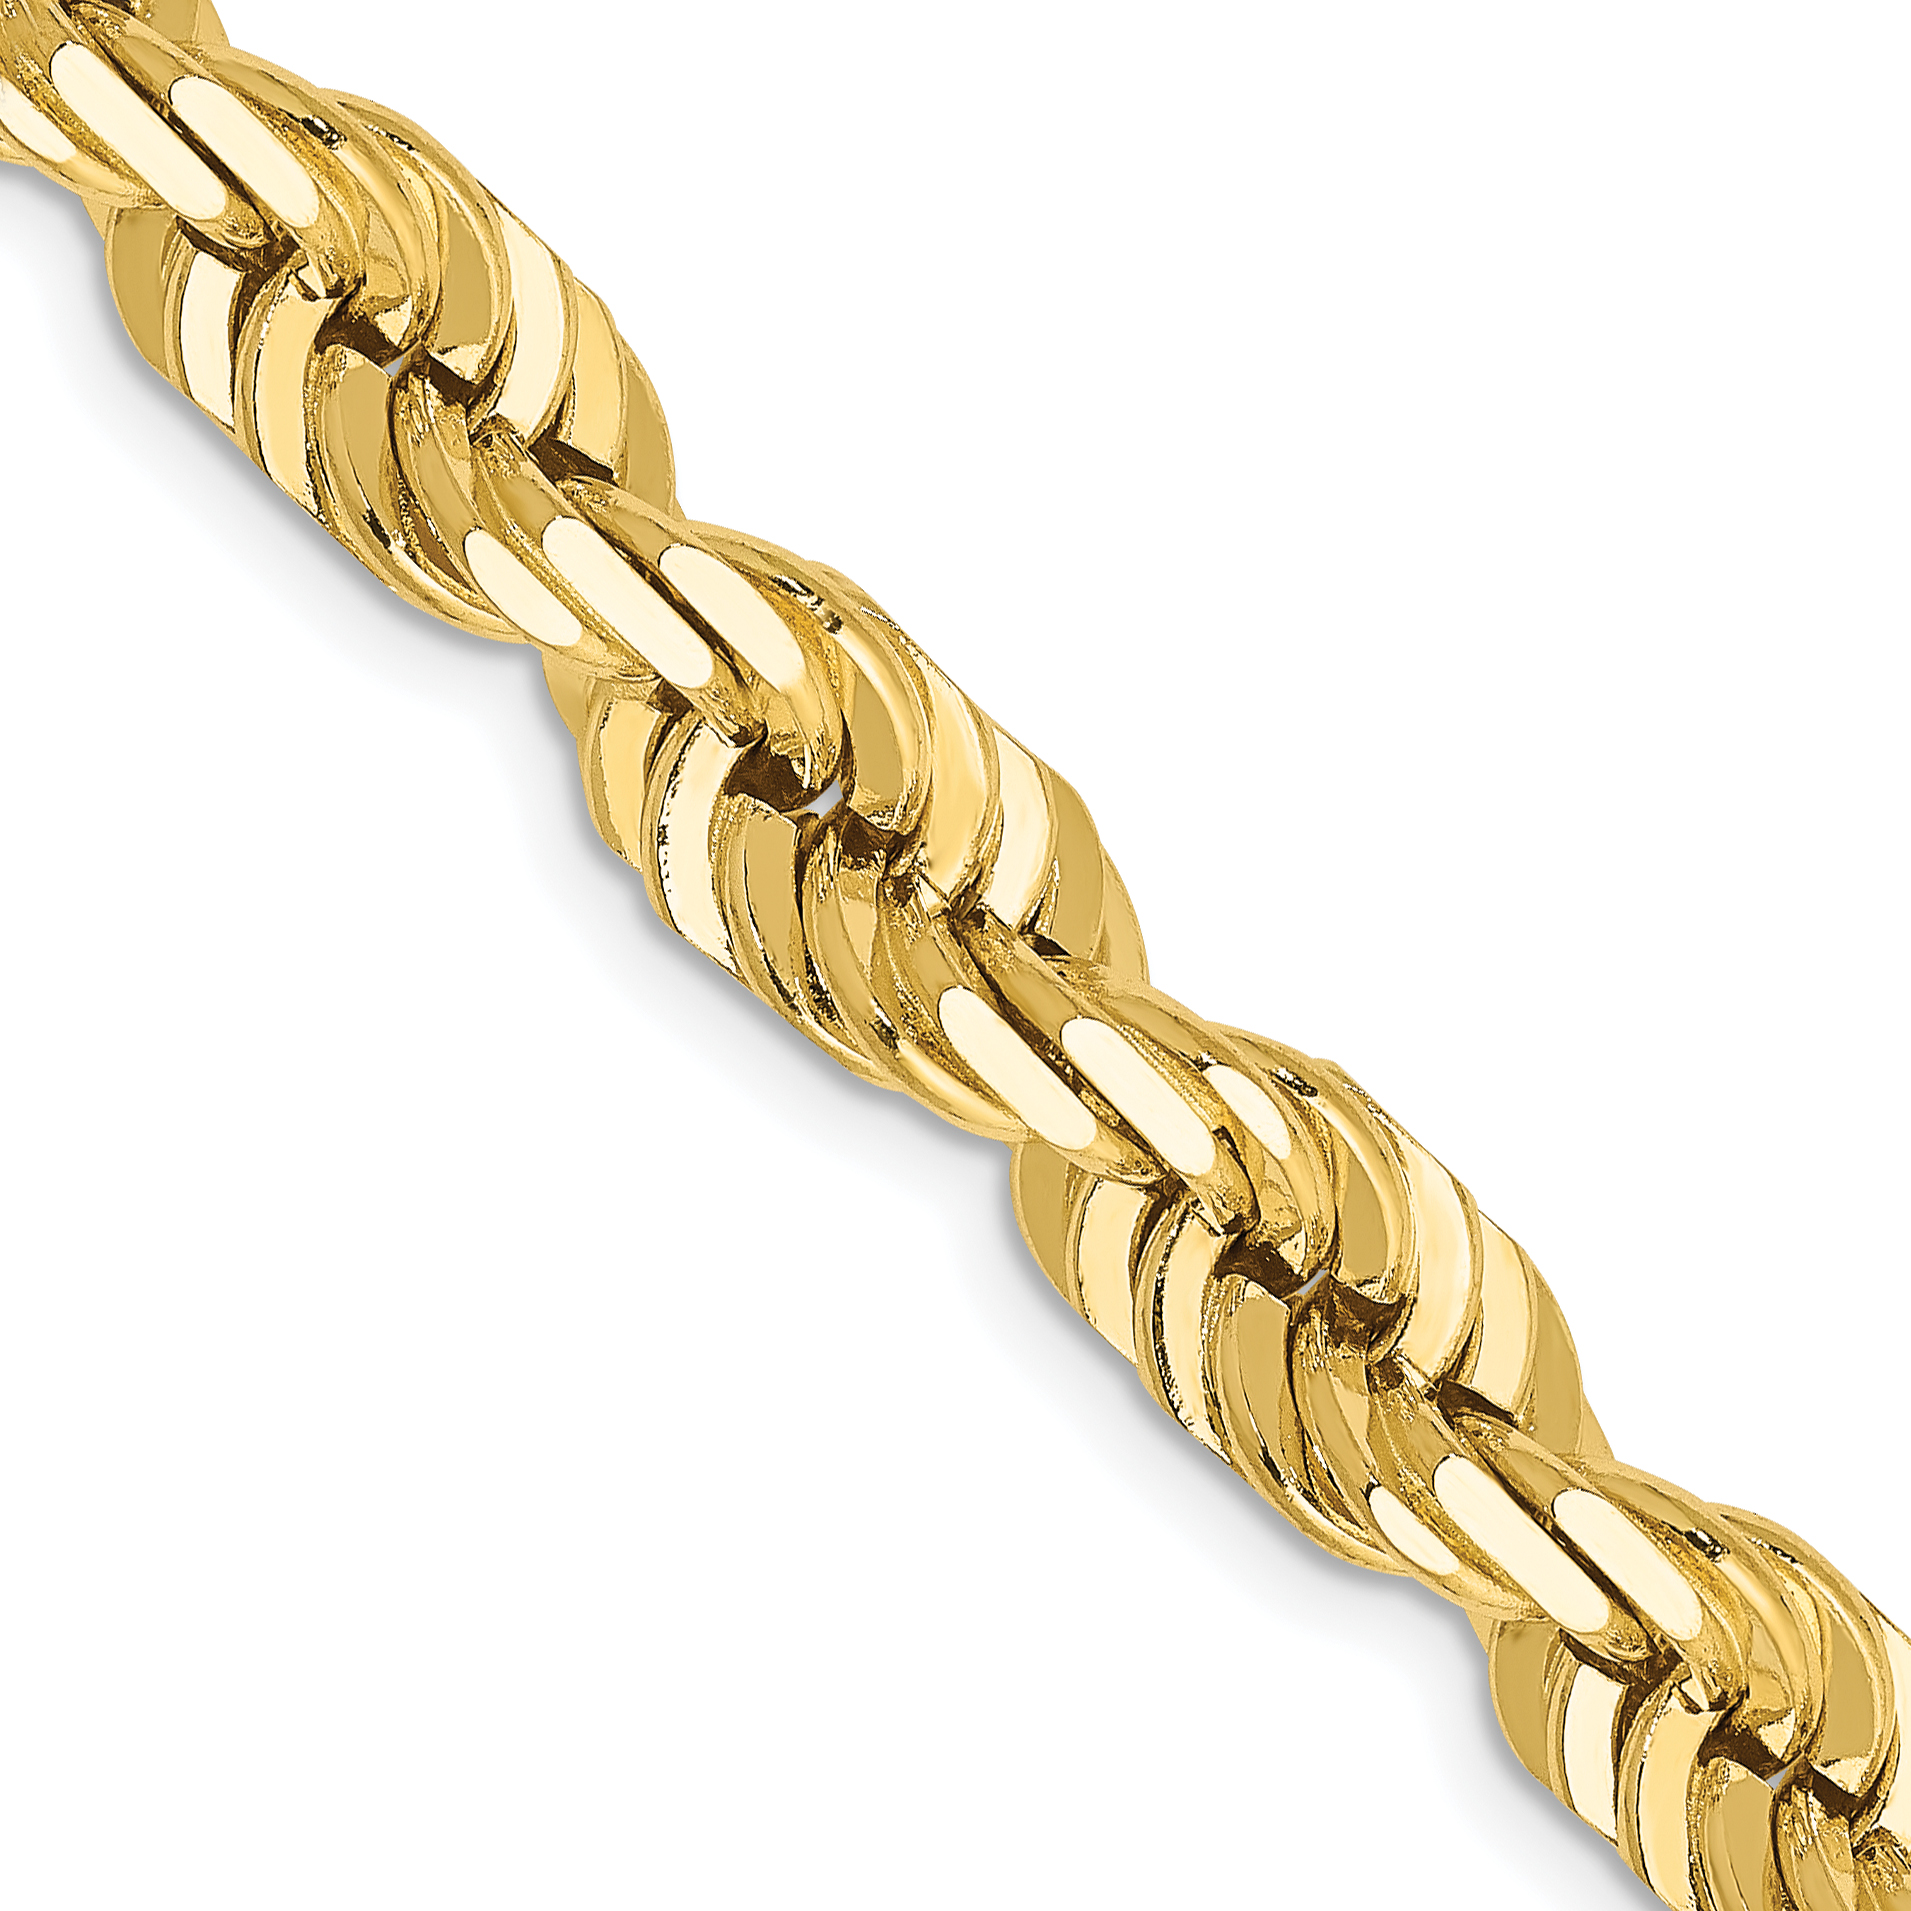 14k 7mm D/C Rope Chain. Weight: 84.83,  Length: 20